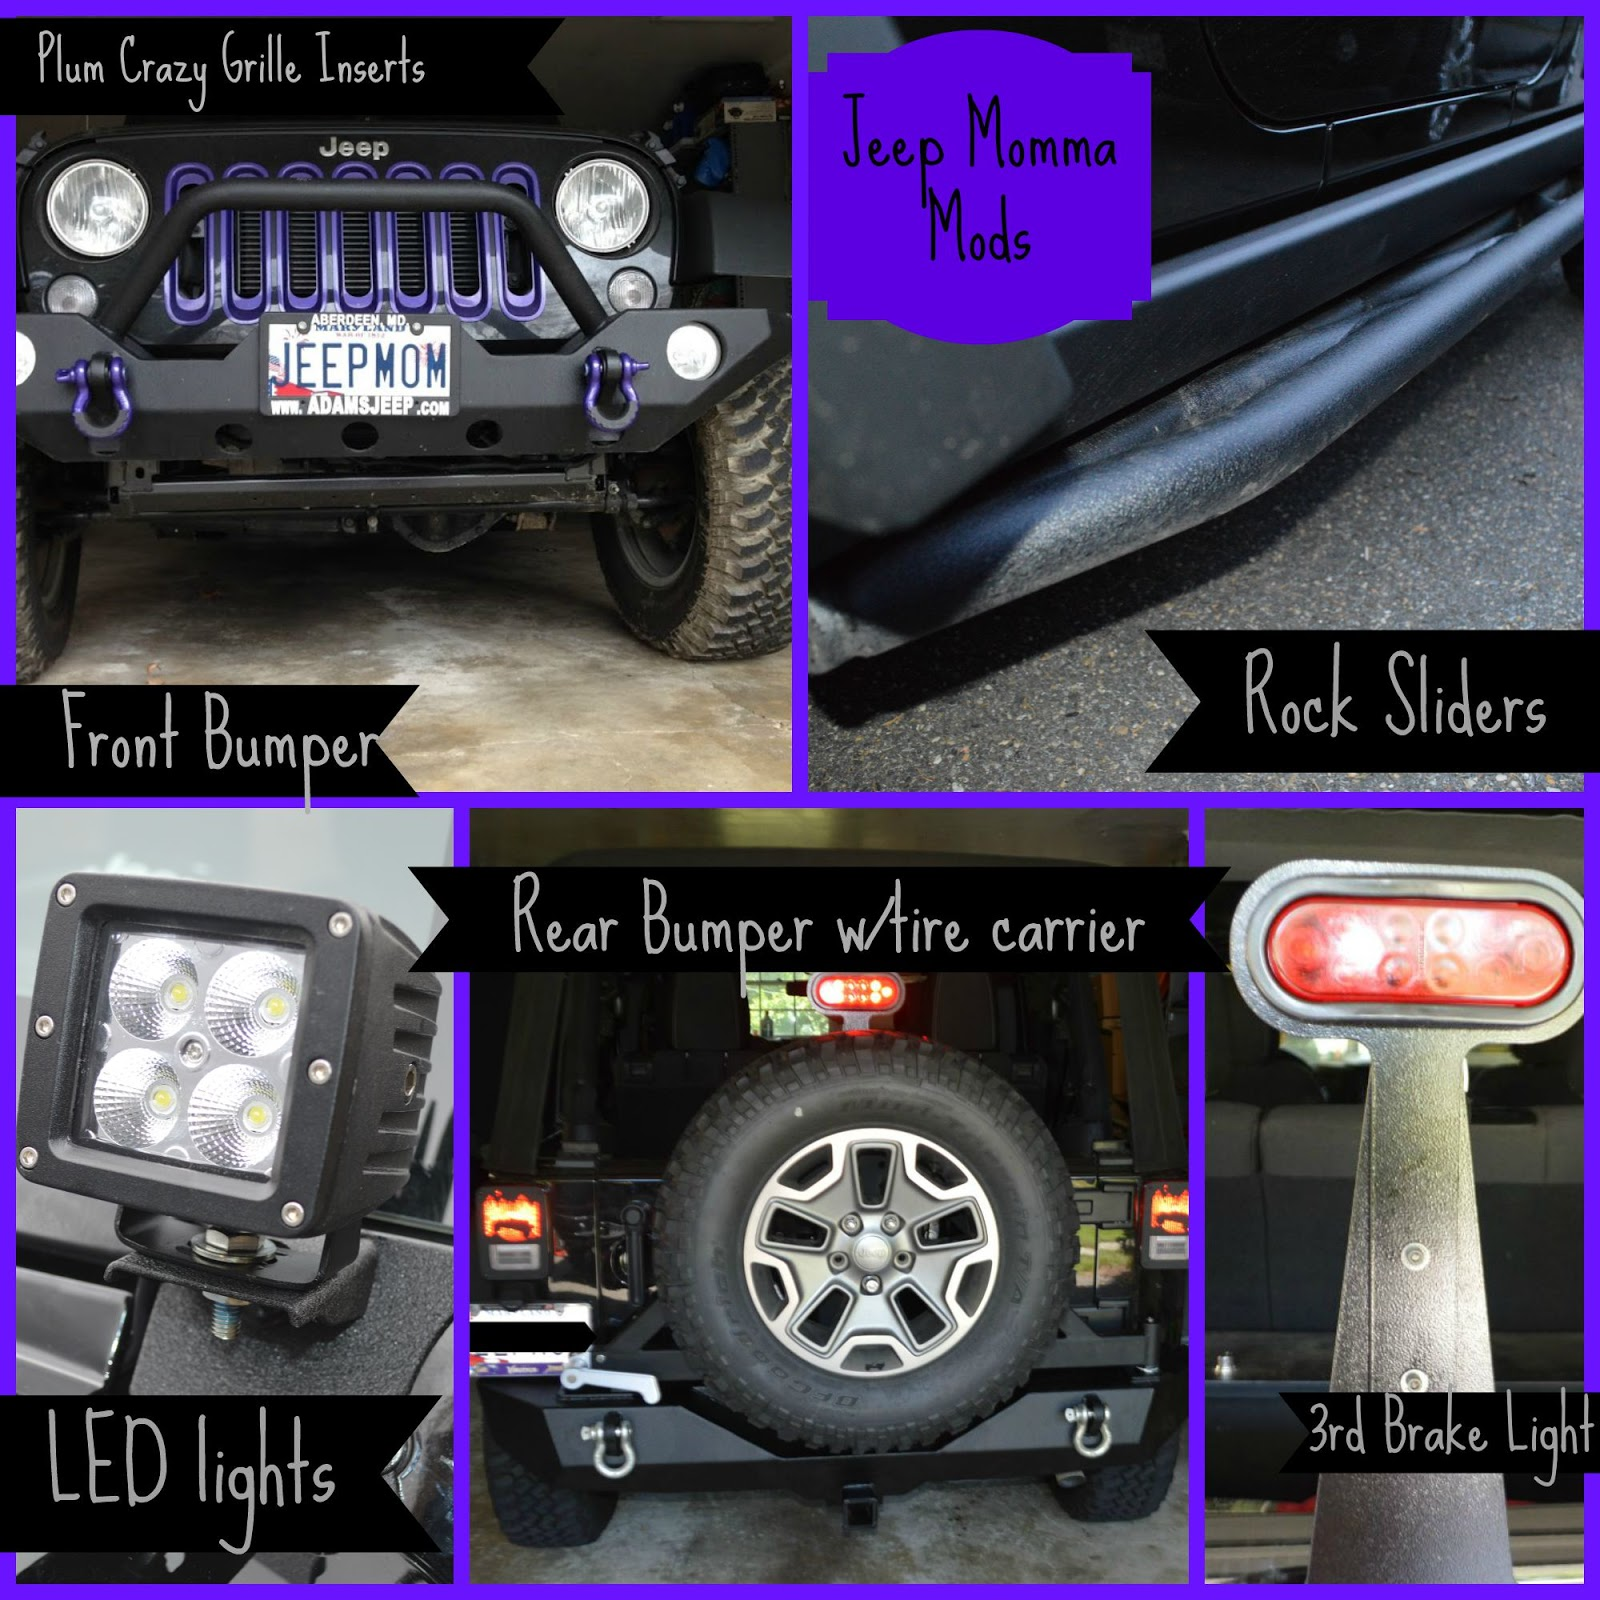 Jeep Wrangler Trunk Storage Bags at a Reasonable Price  sc 1 st  Jeep Momma & Jeep Momma - Blog: Jeep Wrangler Trunk Storage Bags at a Reasonable ...